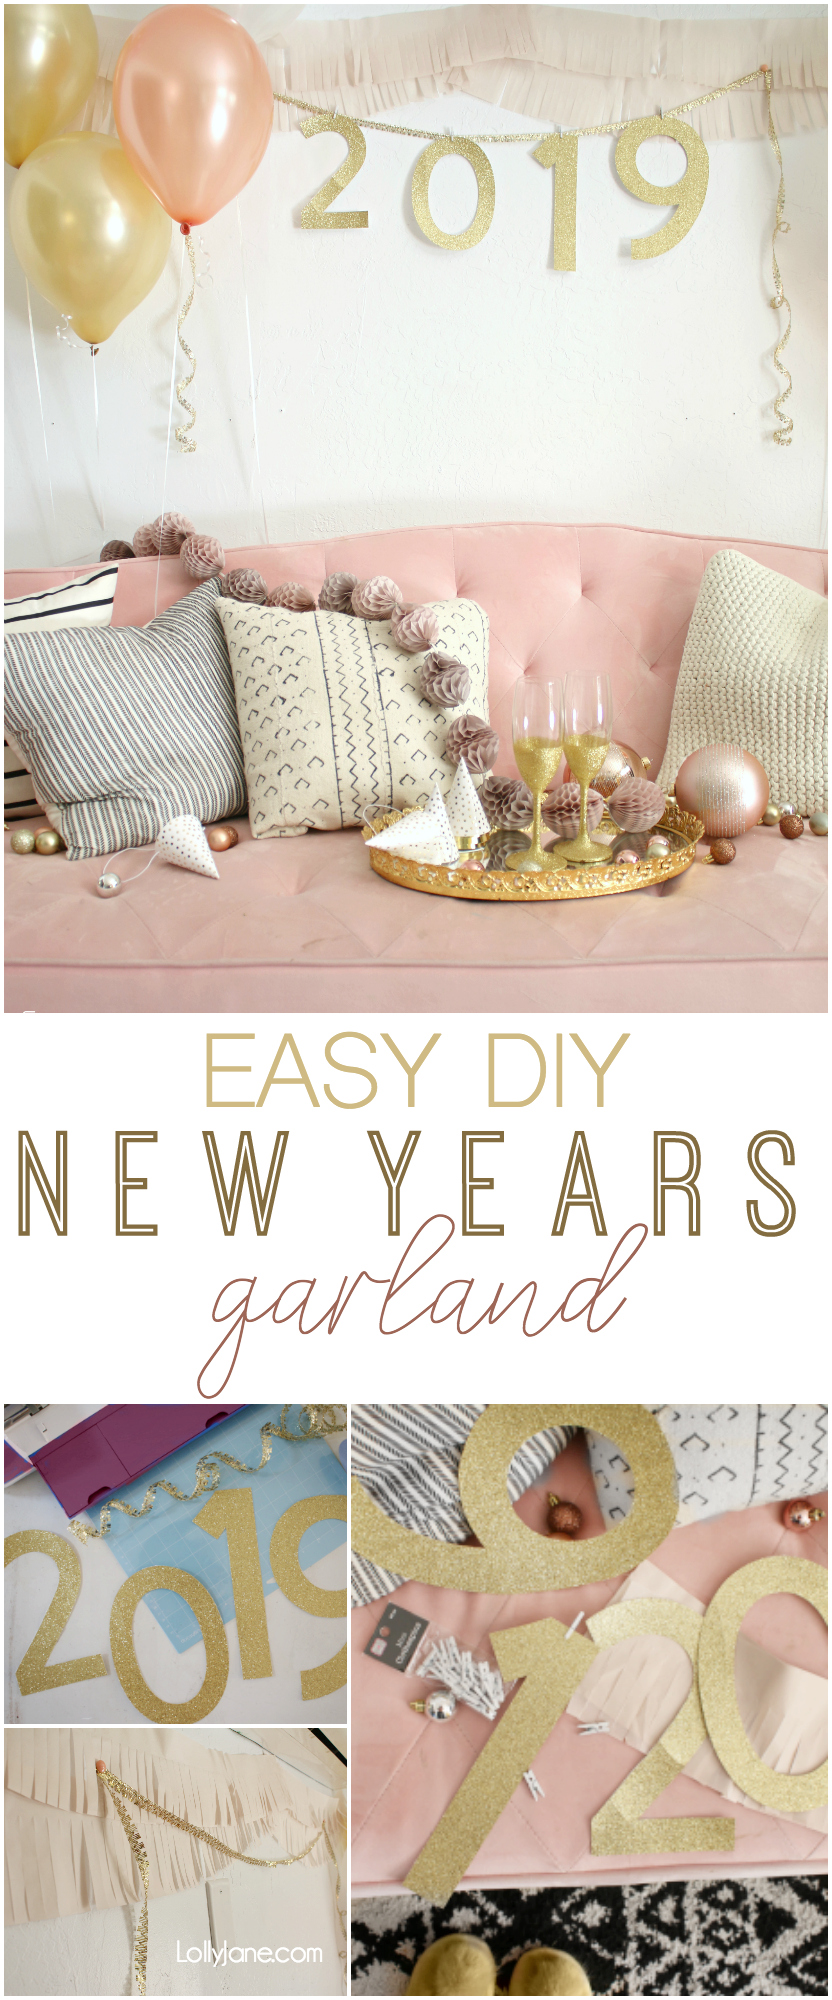 Simple + Pretty New Years Eve EASY Backdrop Ideas... love this SIMPLE DIY New Years Garland! Throw a party in style that's not complicated or time consuming! #nye #nyeparty #partybackdrop #rosegold